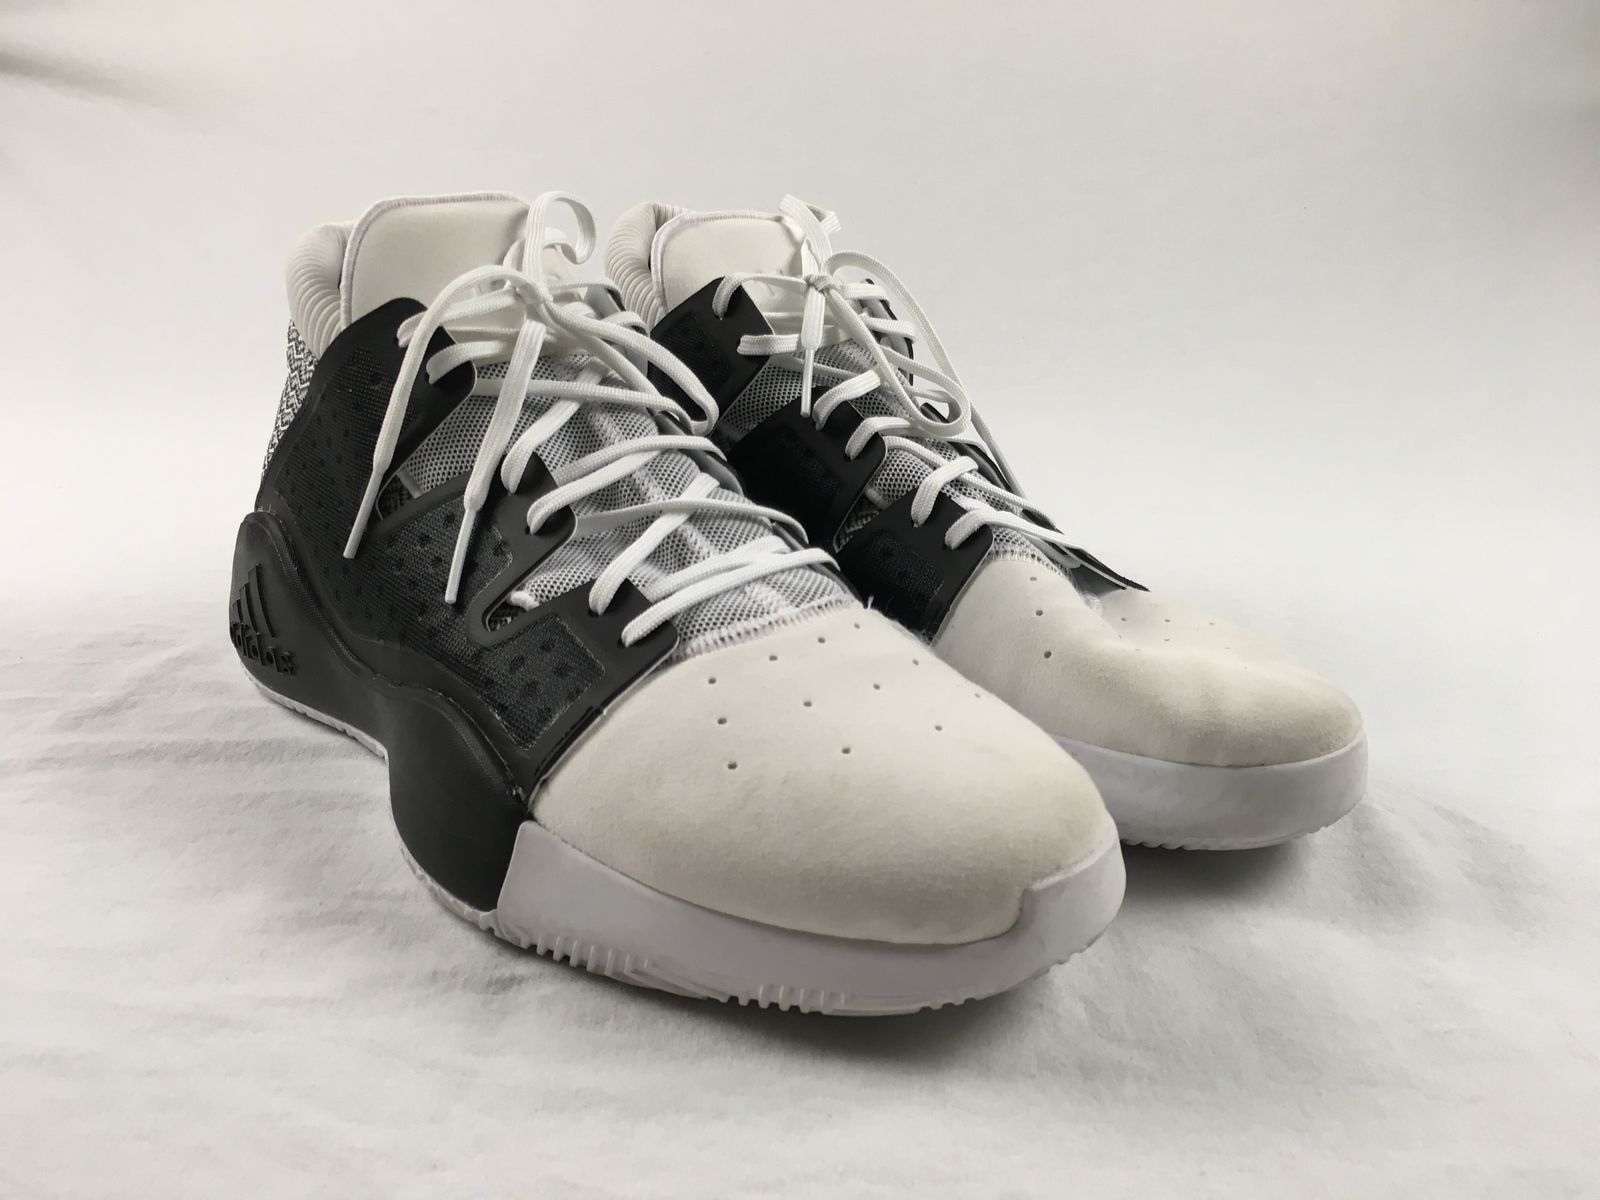 071aba8c4cd9 Details about adidas Pro Vision - Black White Basketball Shoes (Men s 13) -  Used